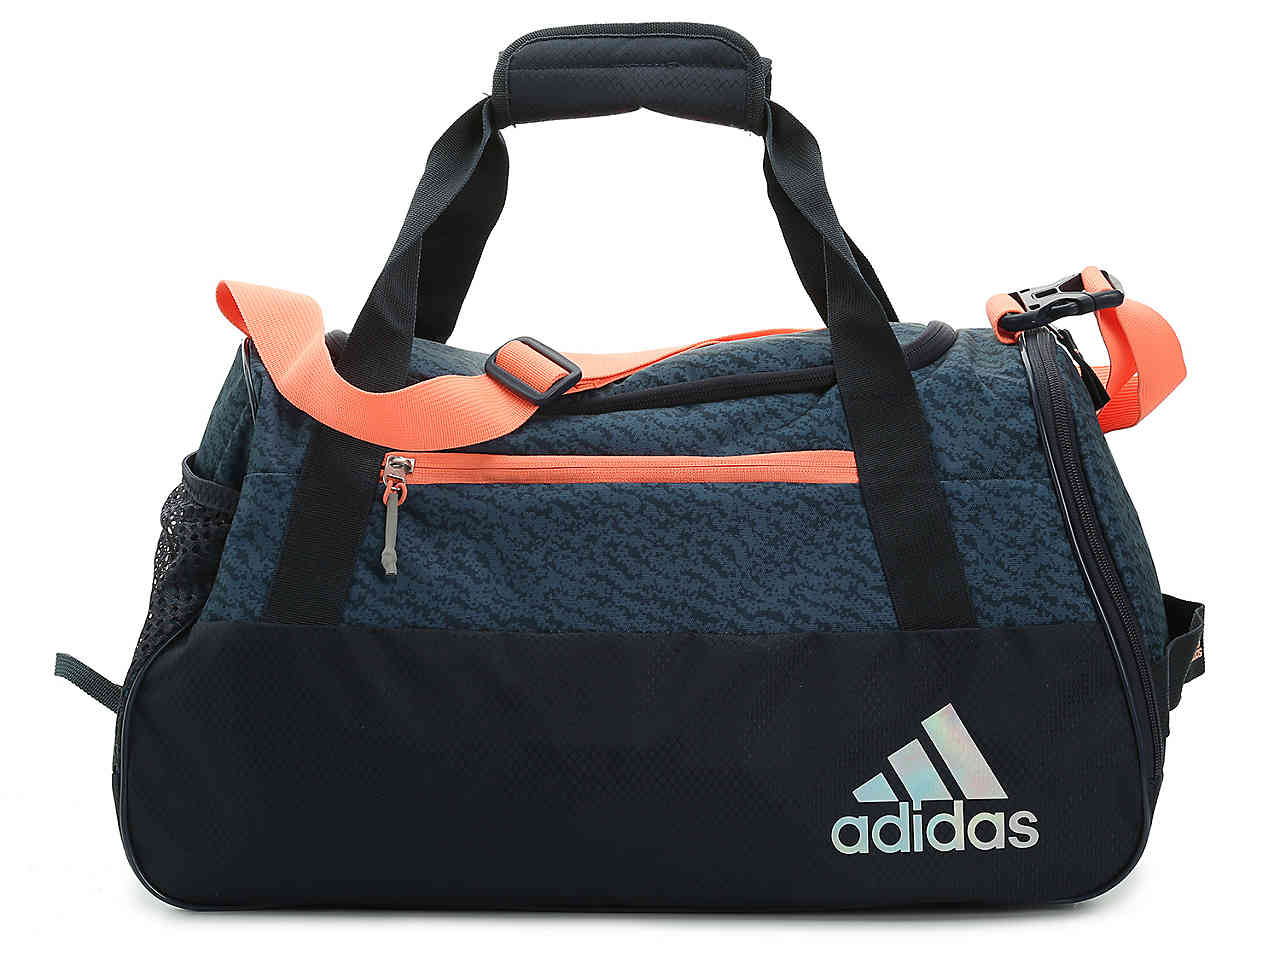 Gym bags for women squad iii gym bag ZPMXJAJ